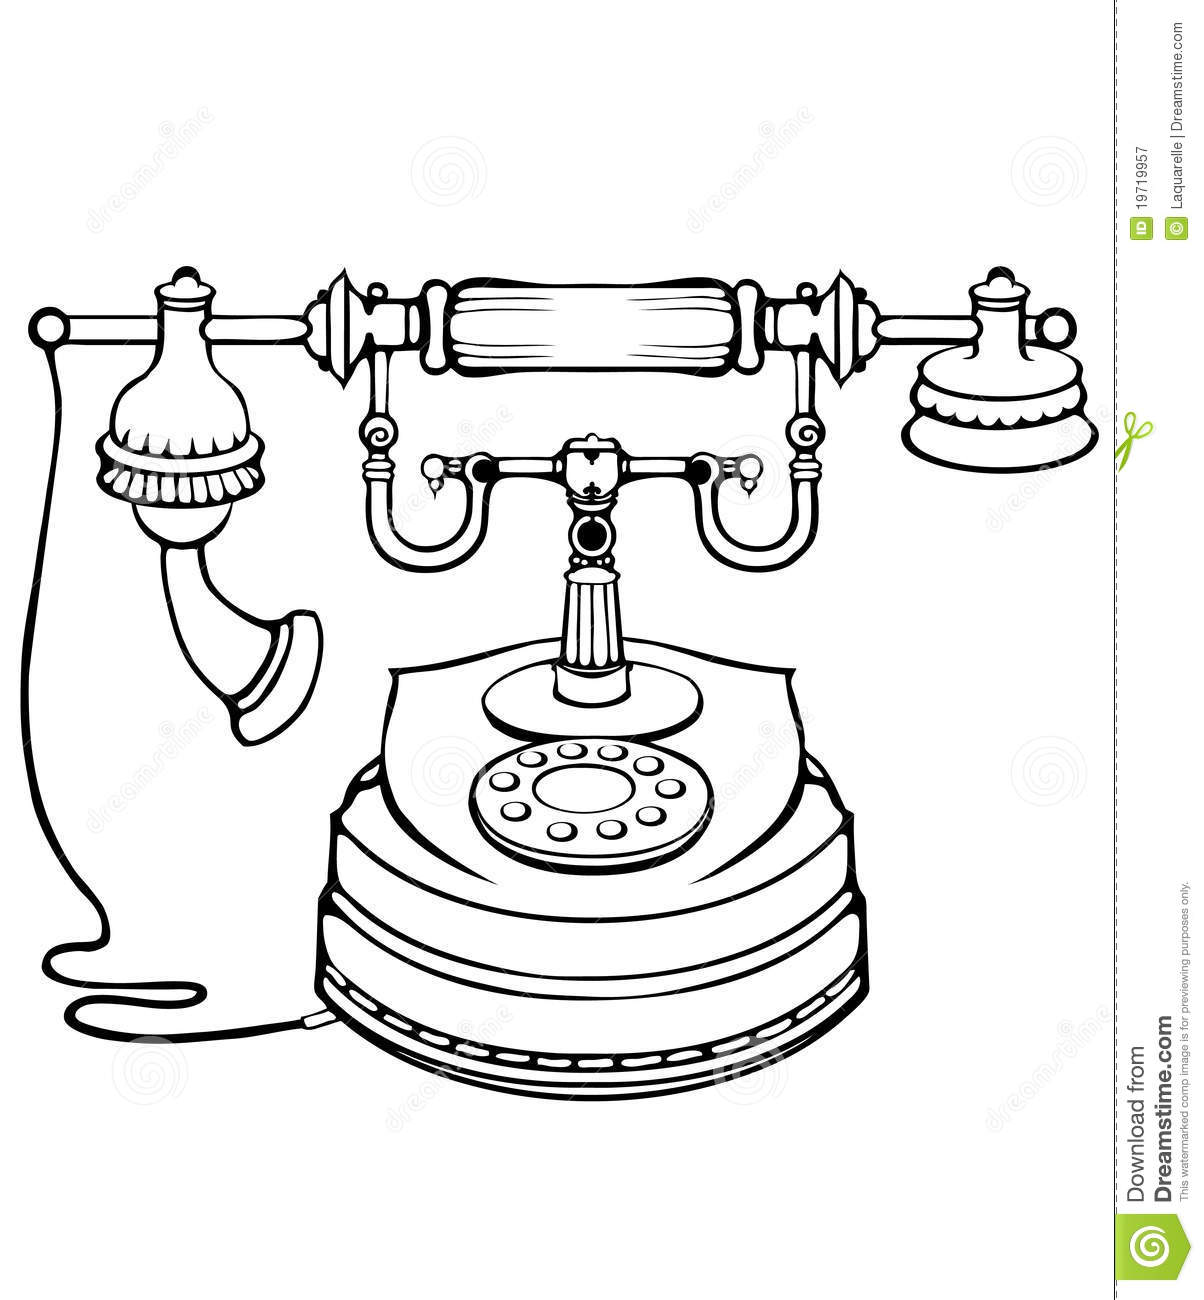 how to use an old telephone